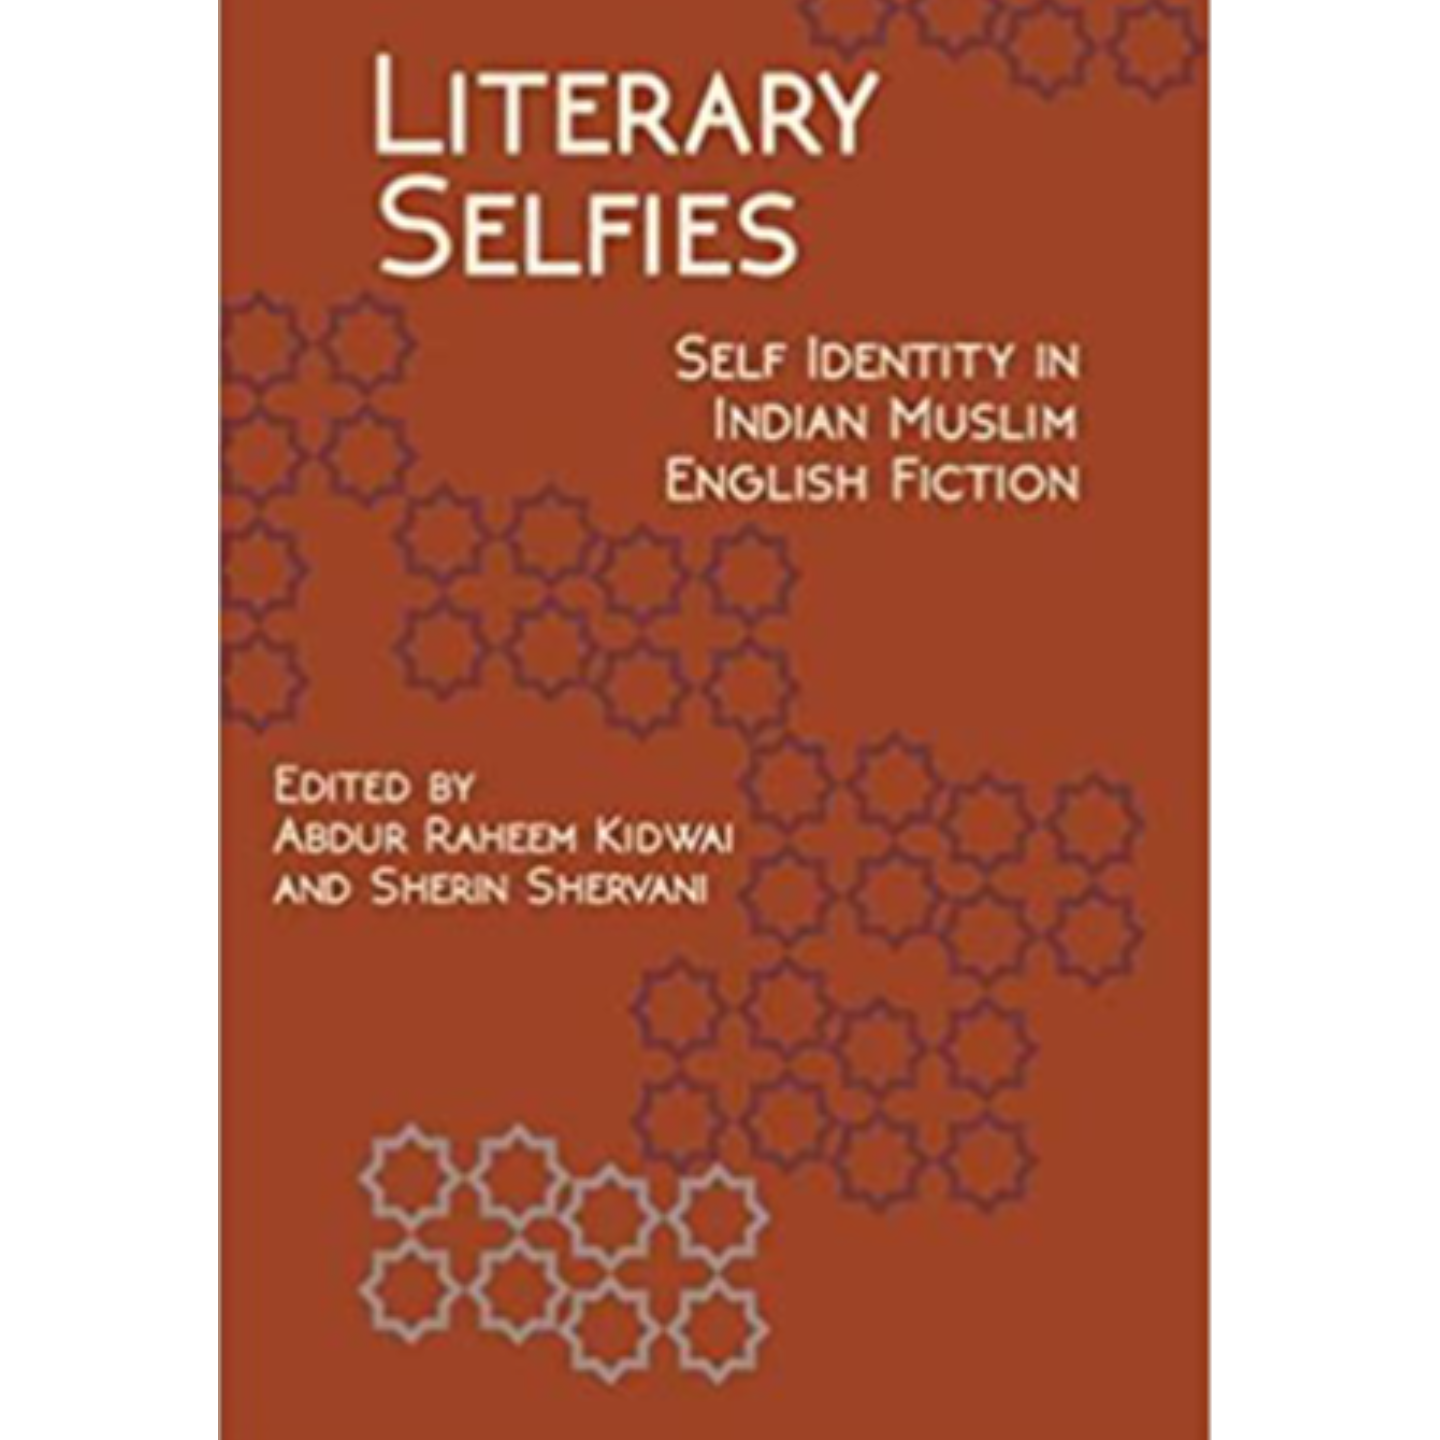 Literary Selfies Self-Identity in Indian Muslim English Fiction by Abdur Raheem Kidwai and Sherin Shervani